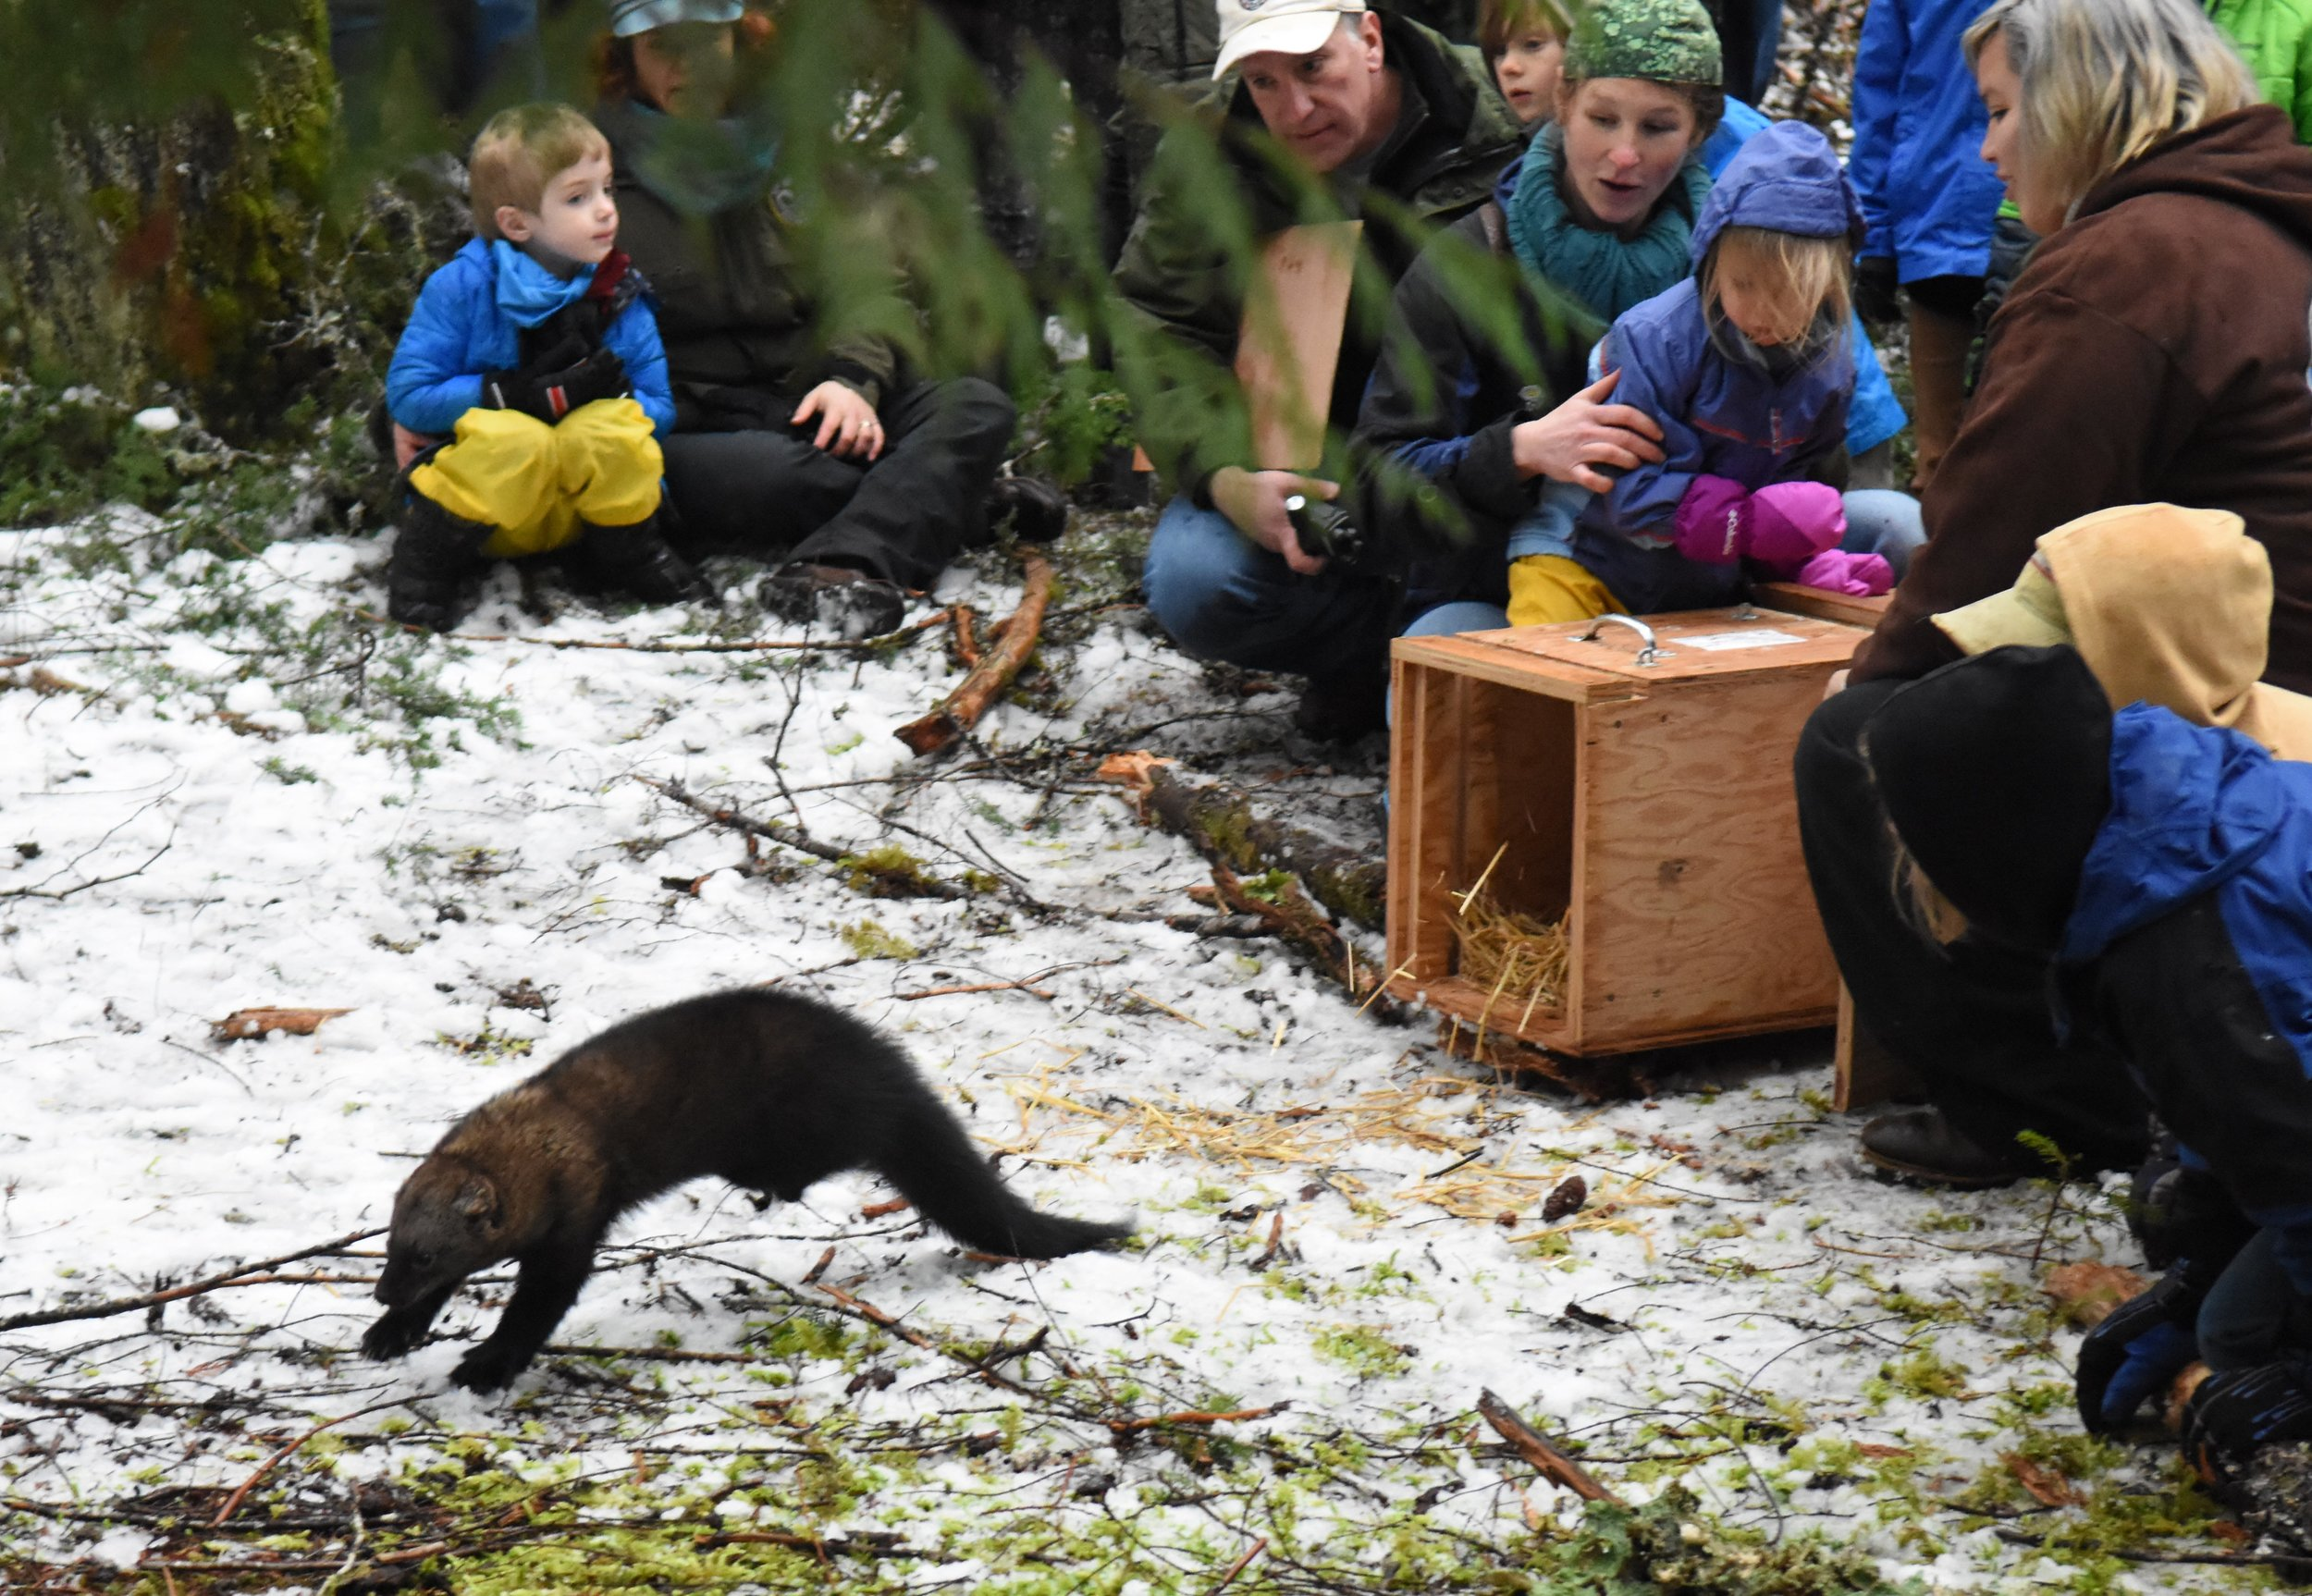 A Pacific fisher is released in Mount Rainier National Park as part of an attempt to repopulate regions where fishers once lived. Credit: NPS